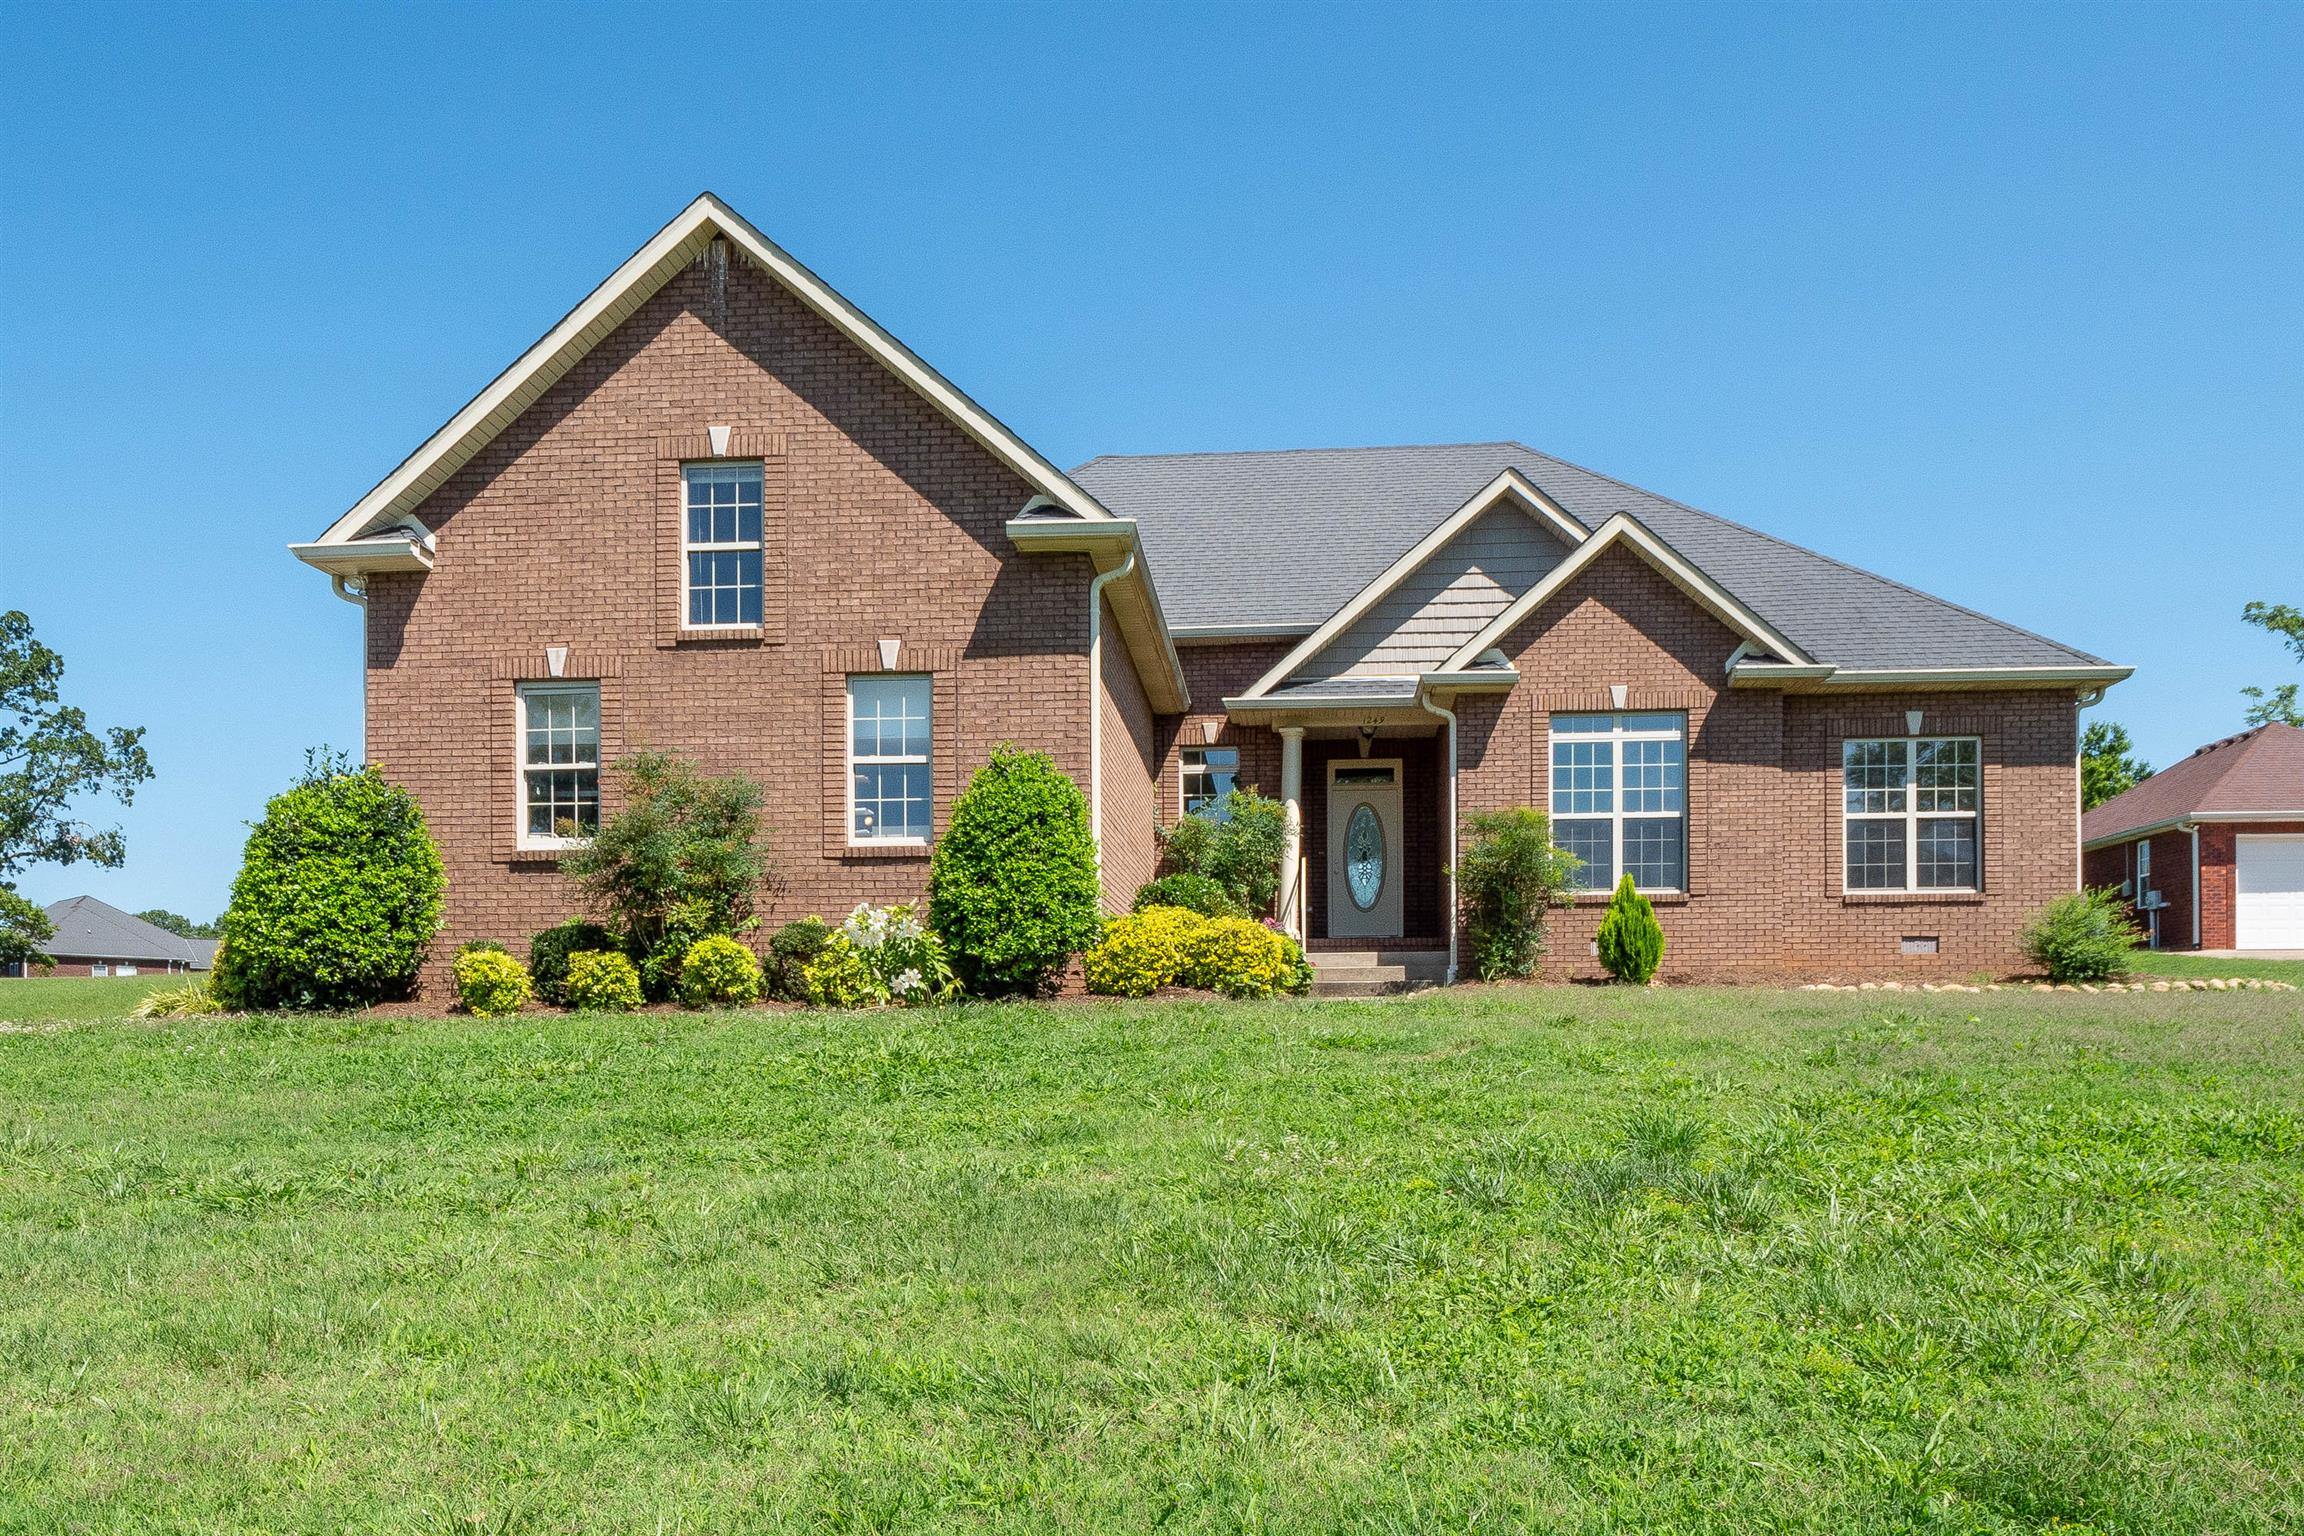 1249 Filmore Harris Road, Pleasant View, TN 37146 - Pleasant View, TN real estate listing